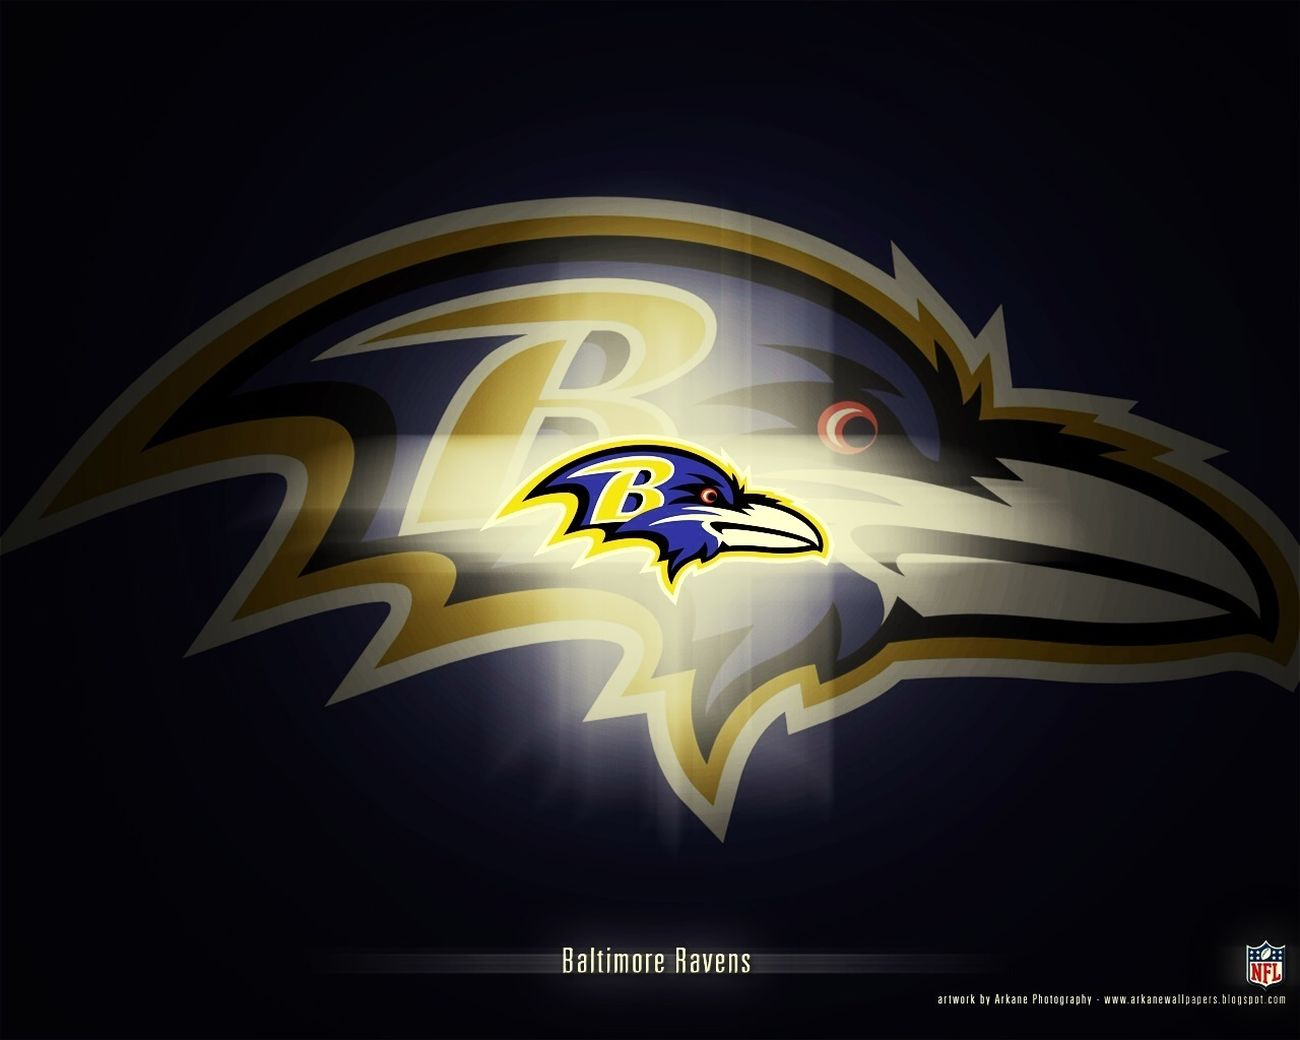 #RavensNation